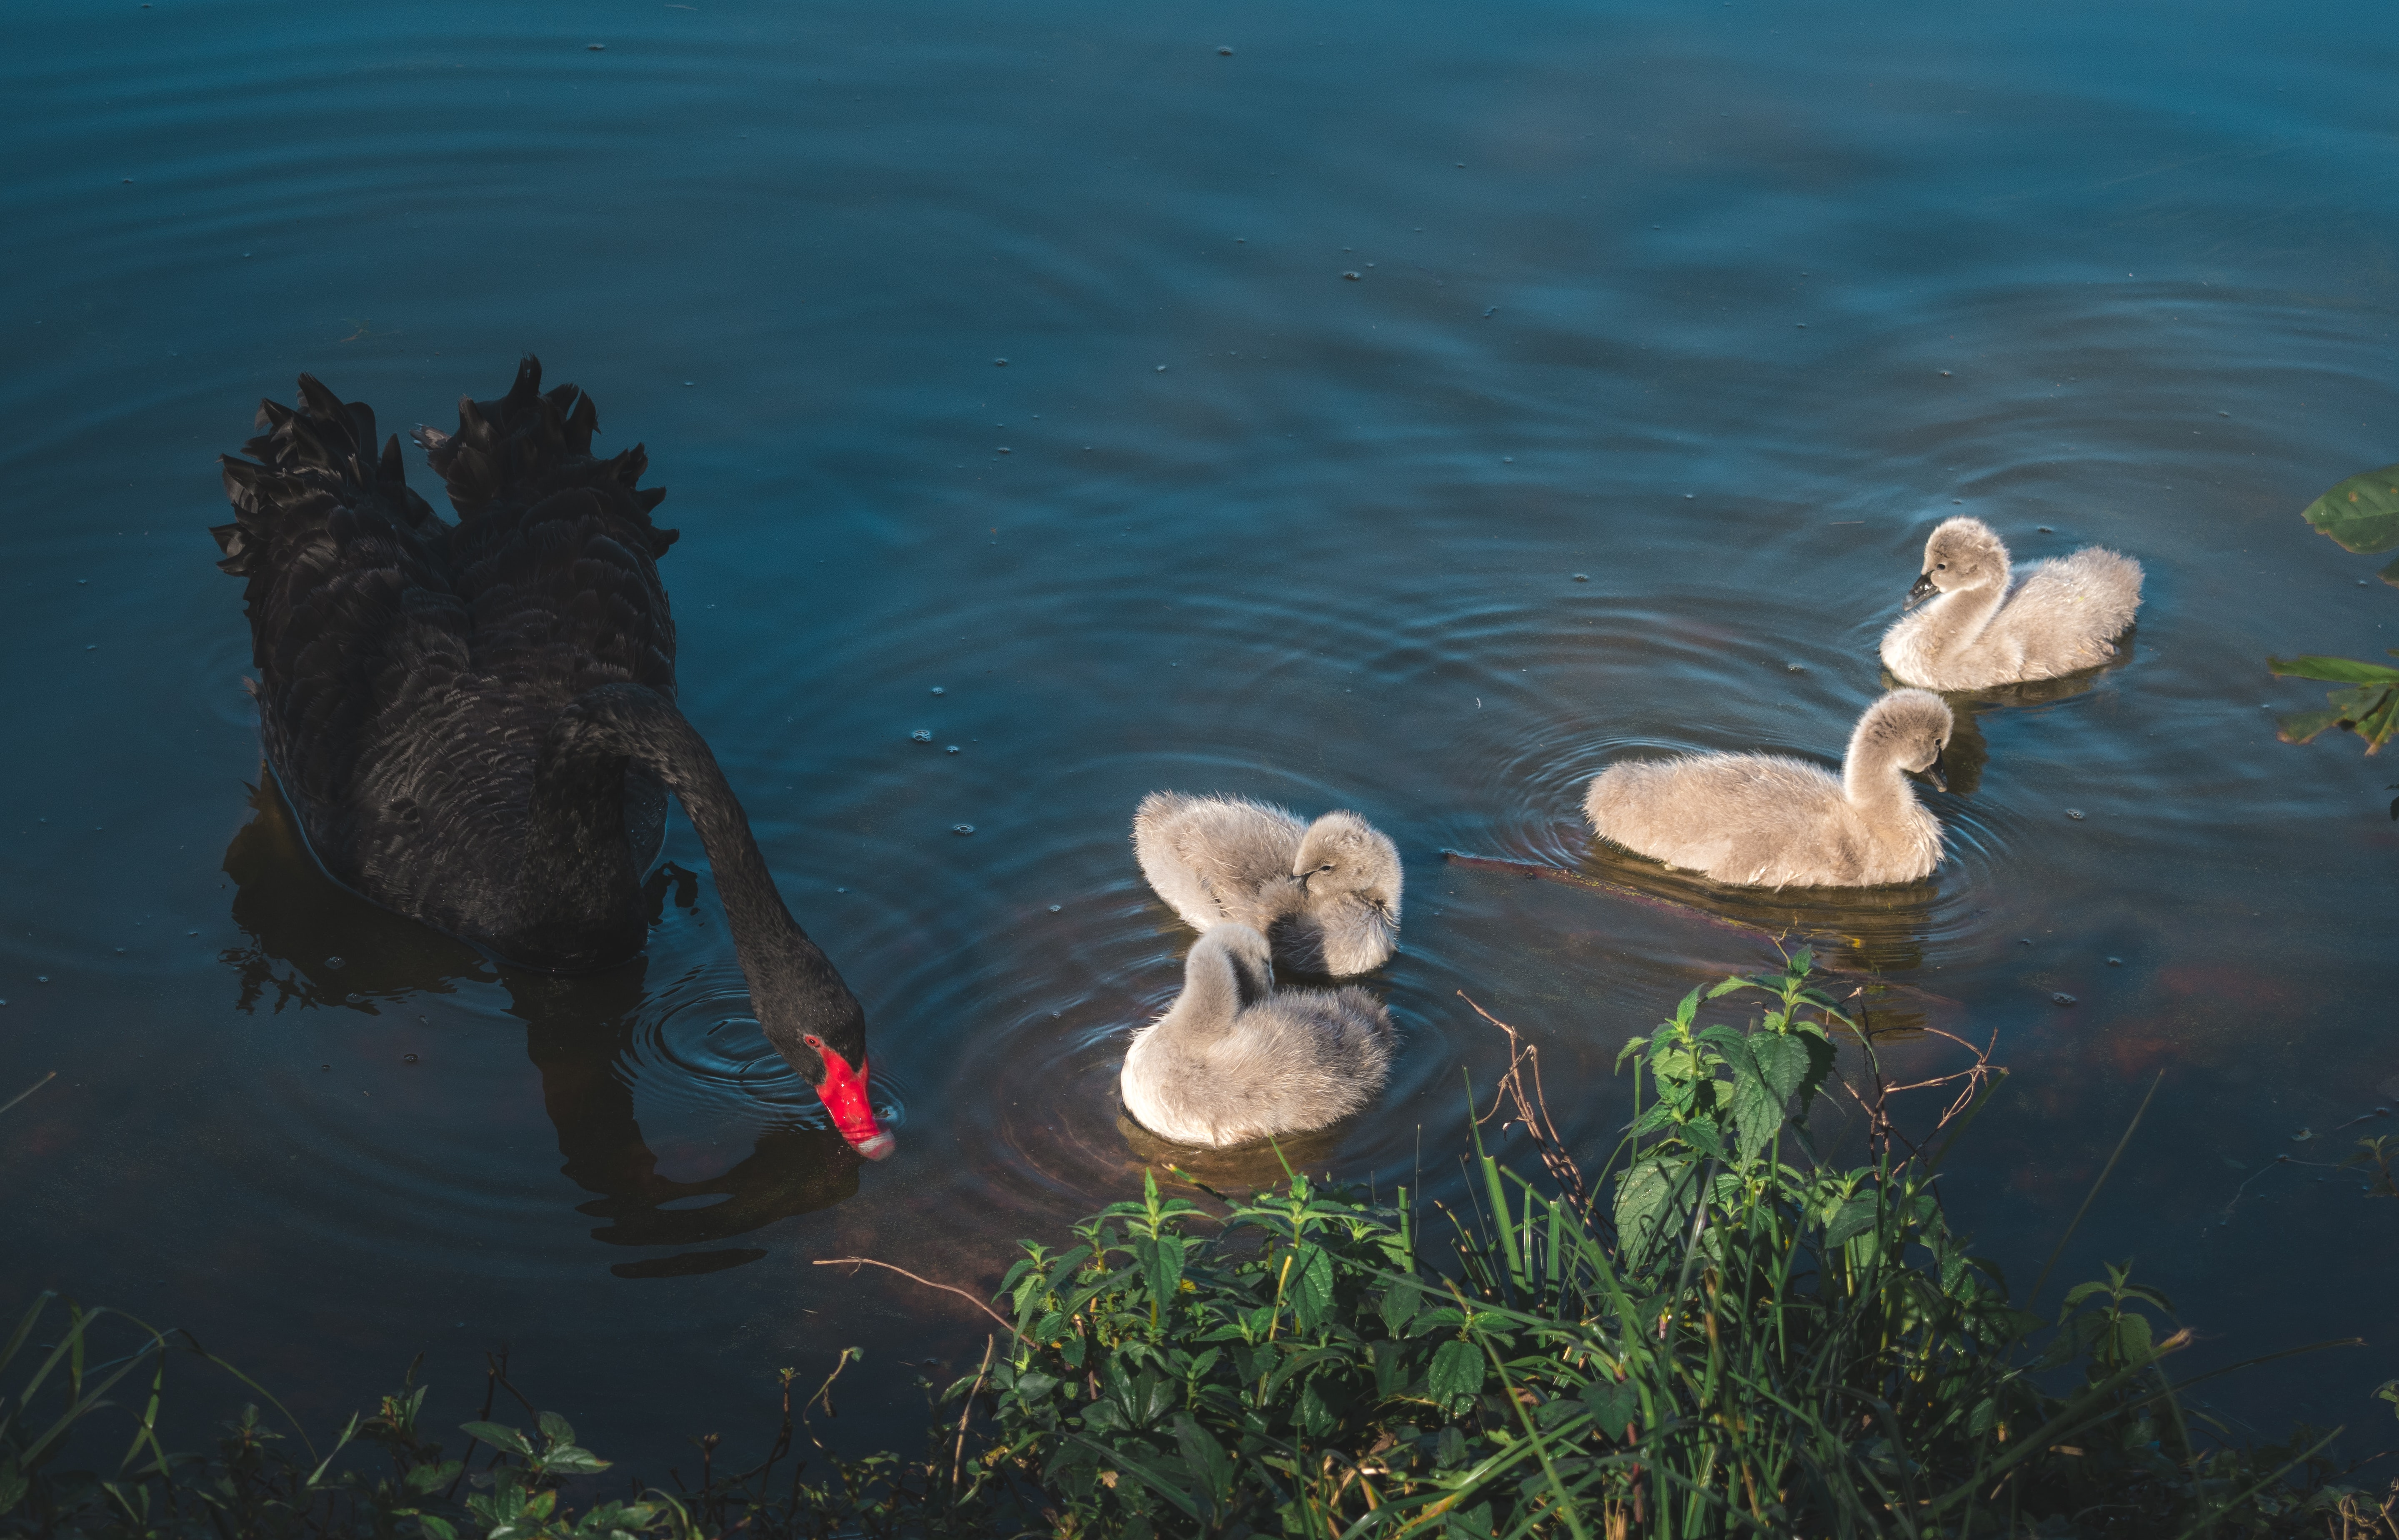 black duck and four gray ducklings on calm body of water